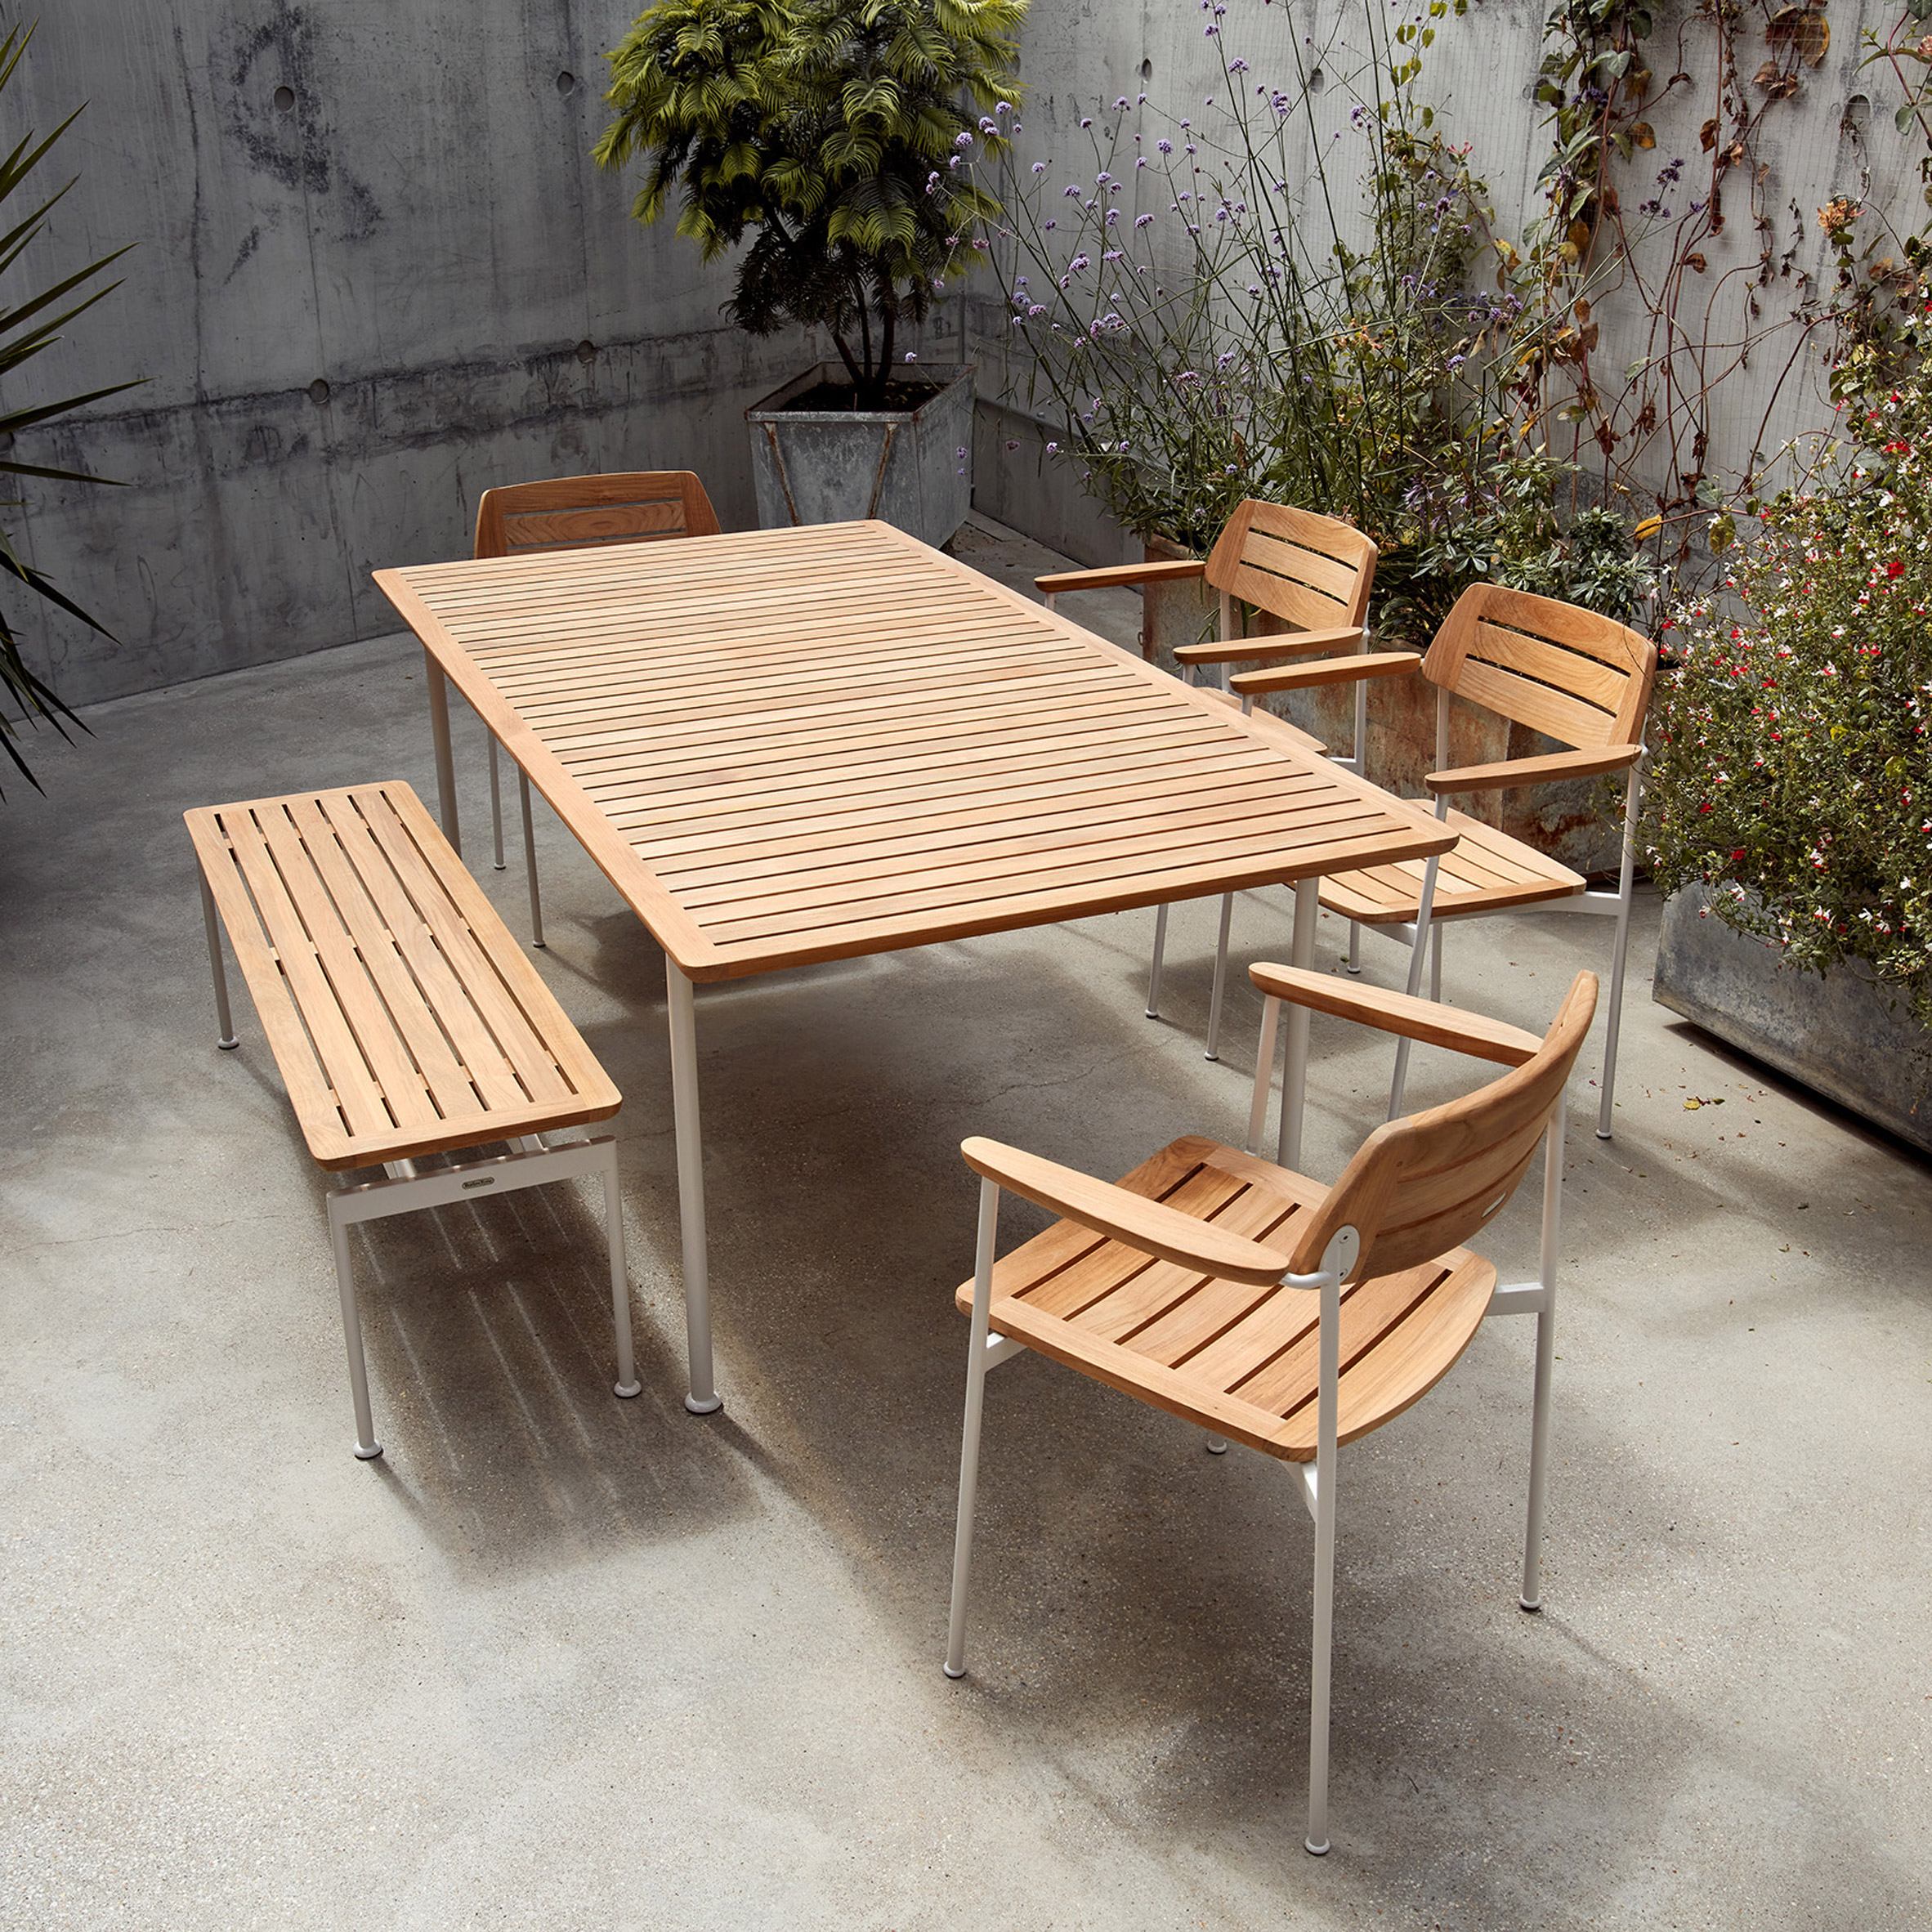 Layout outdoor collection by Andrew Jones and Nathalie de Leval for Barlow Tyrie